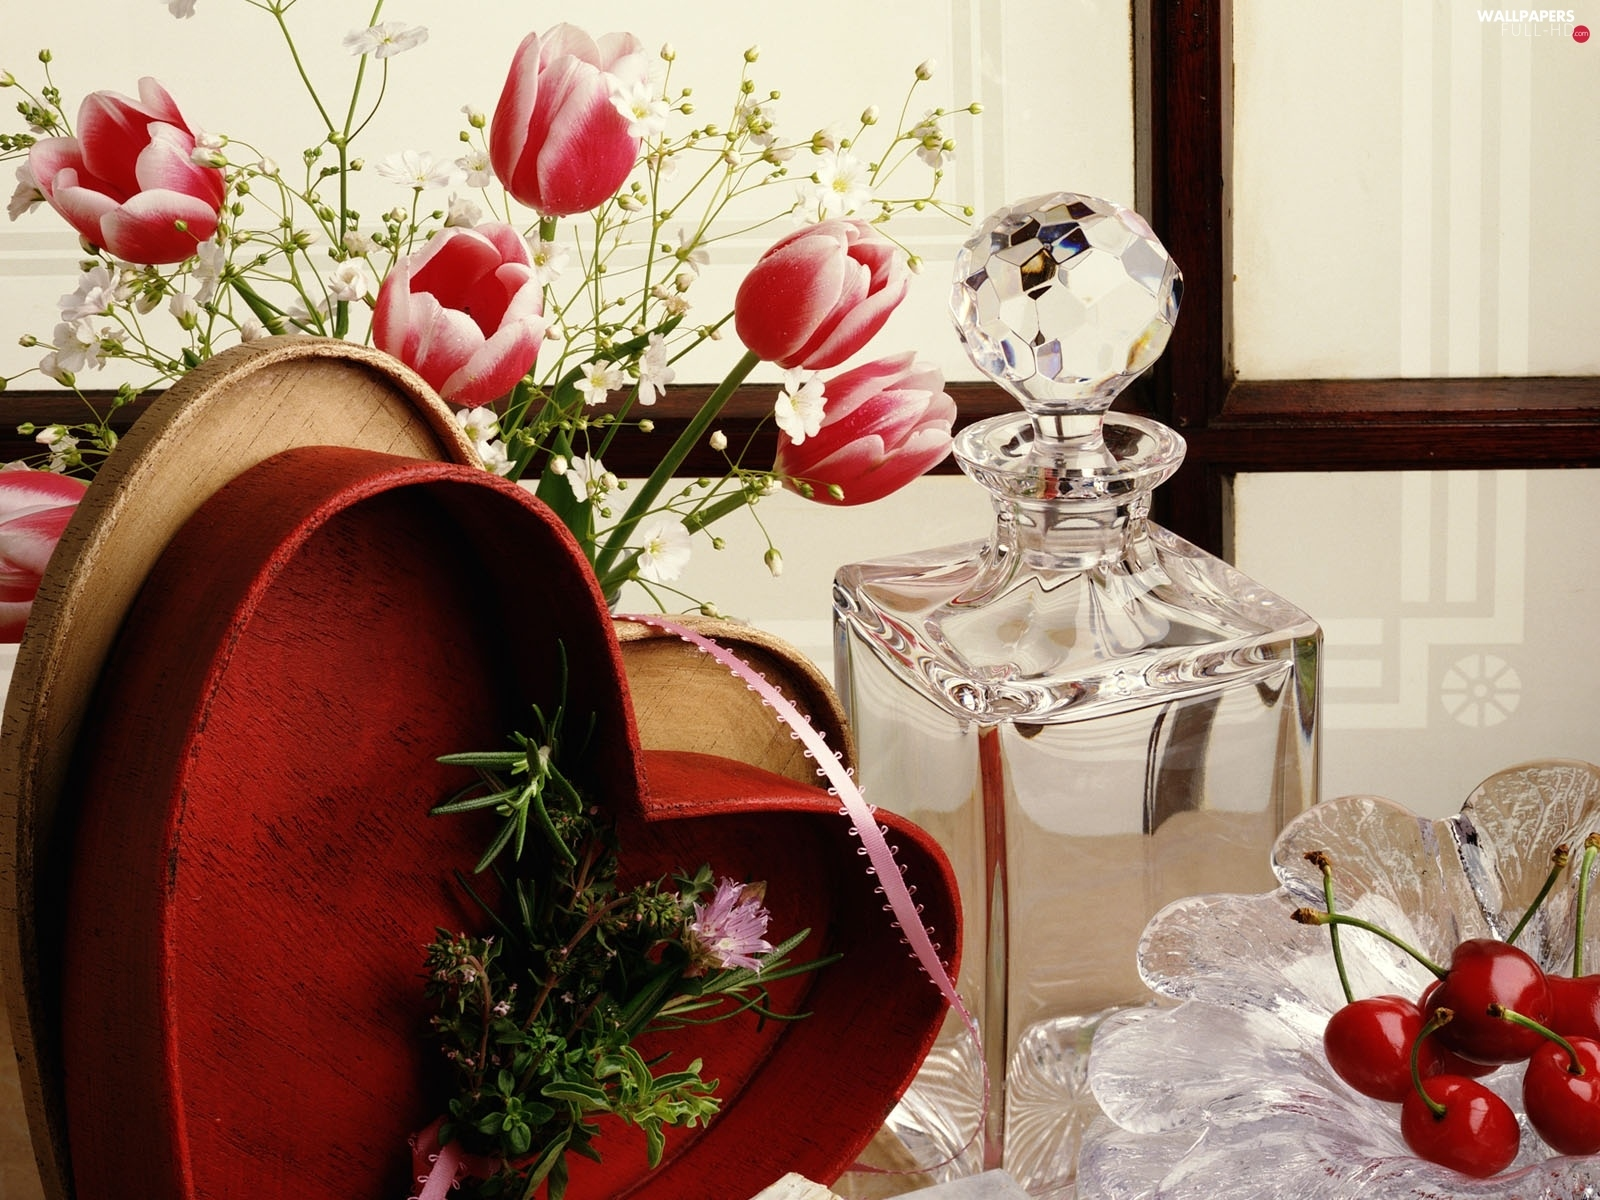 Flowers, carafe, Heart